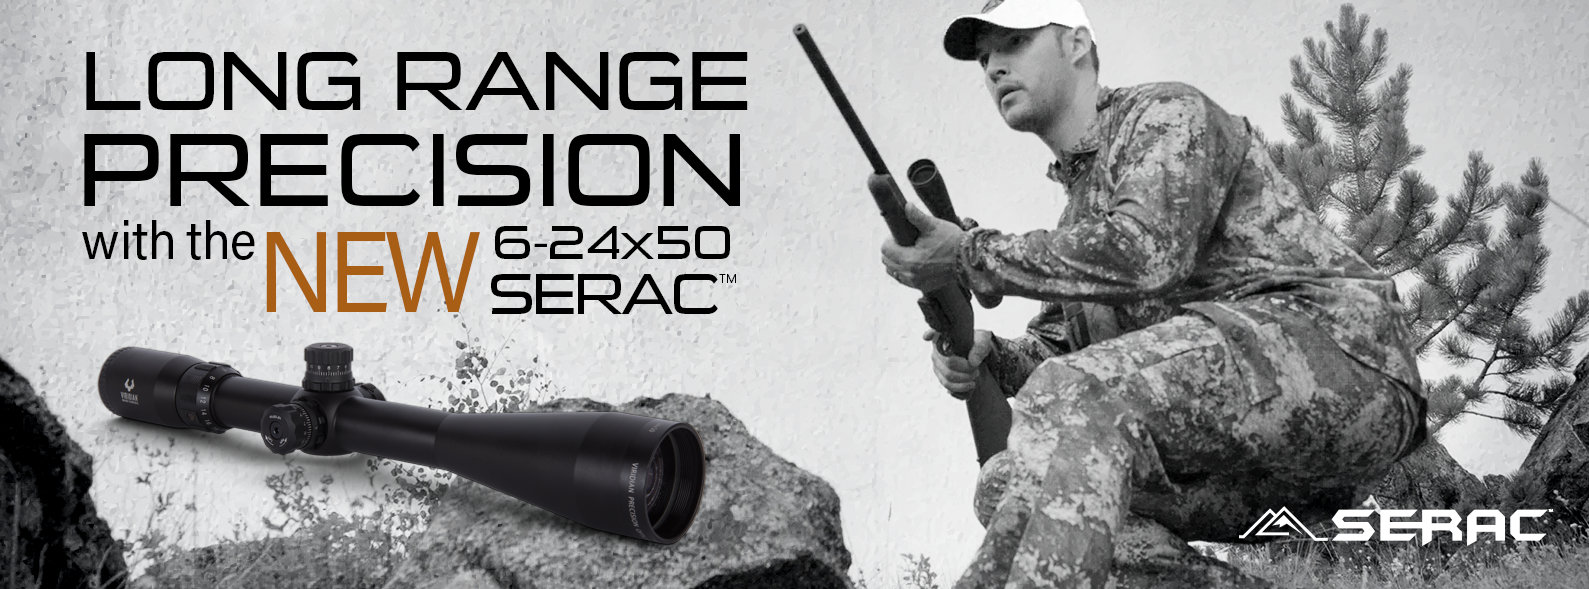 Long Range Precision with the NEW 6-24X50 Serac TM